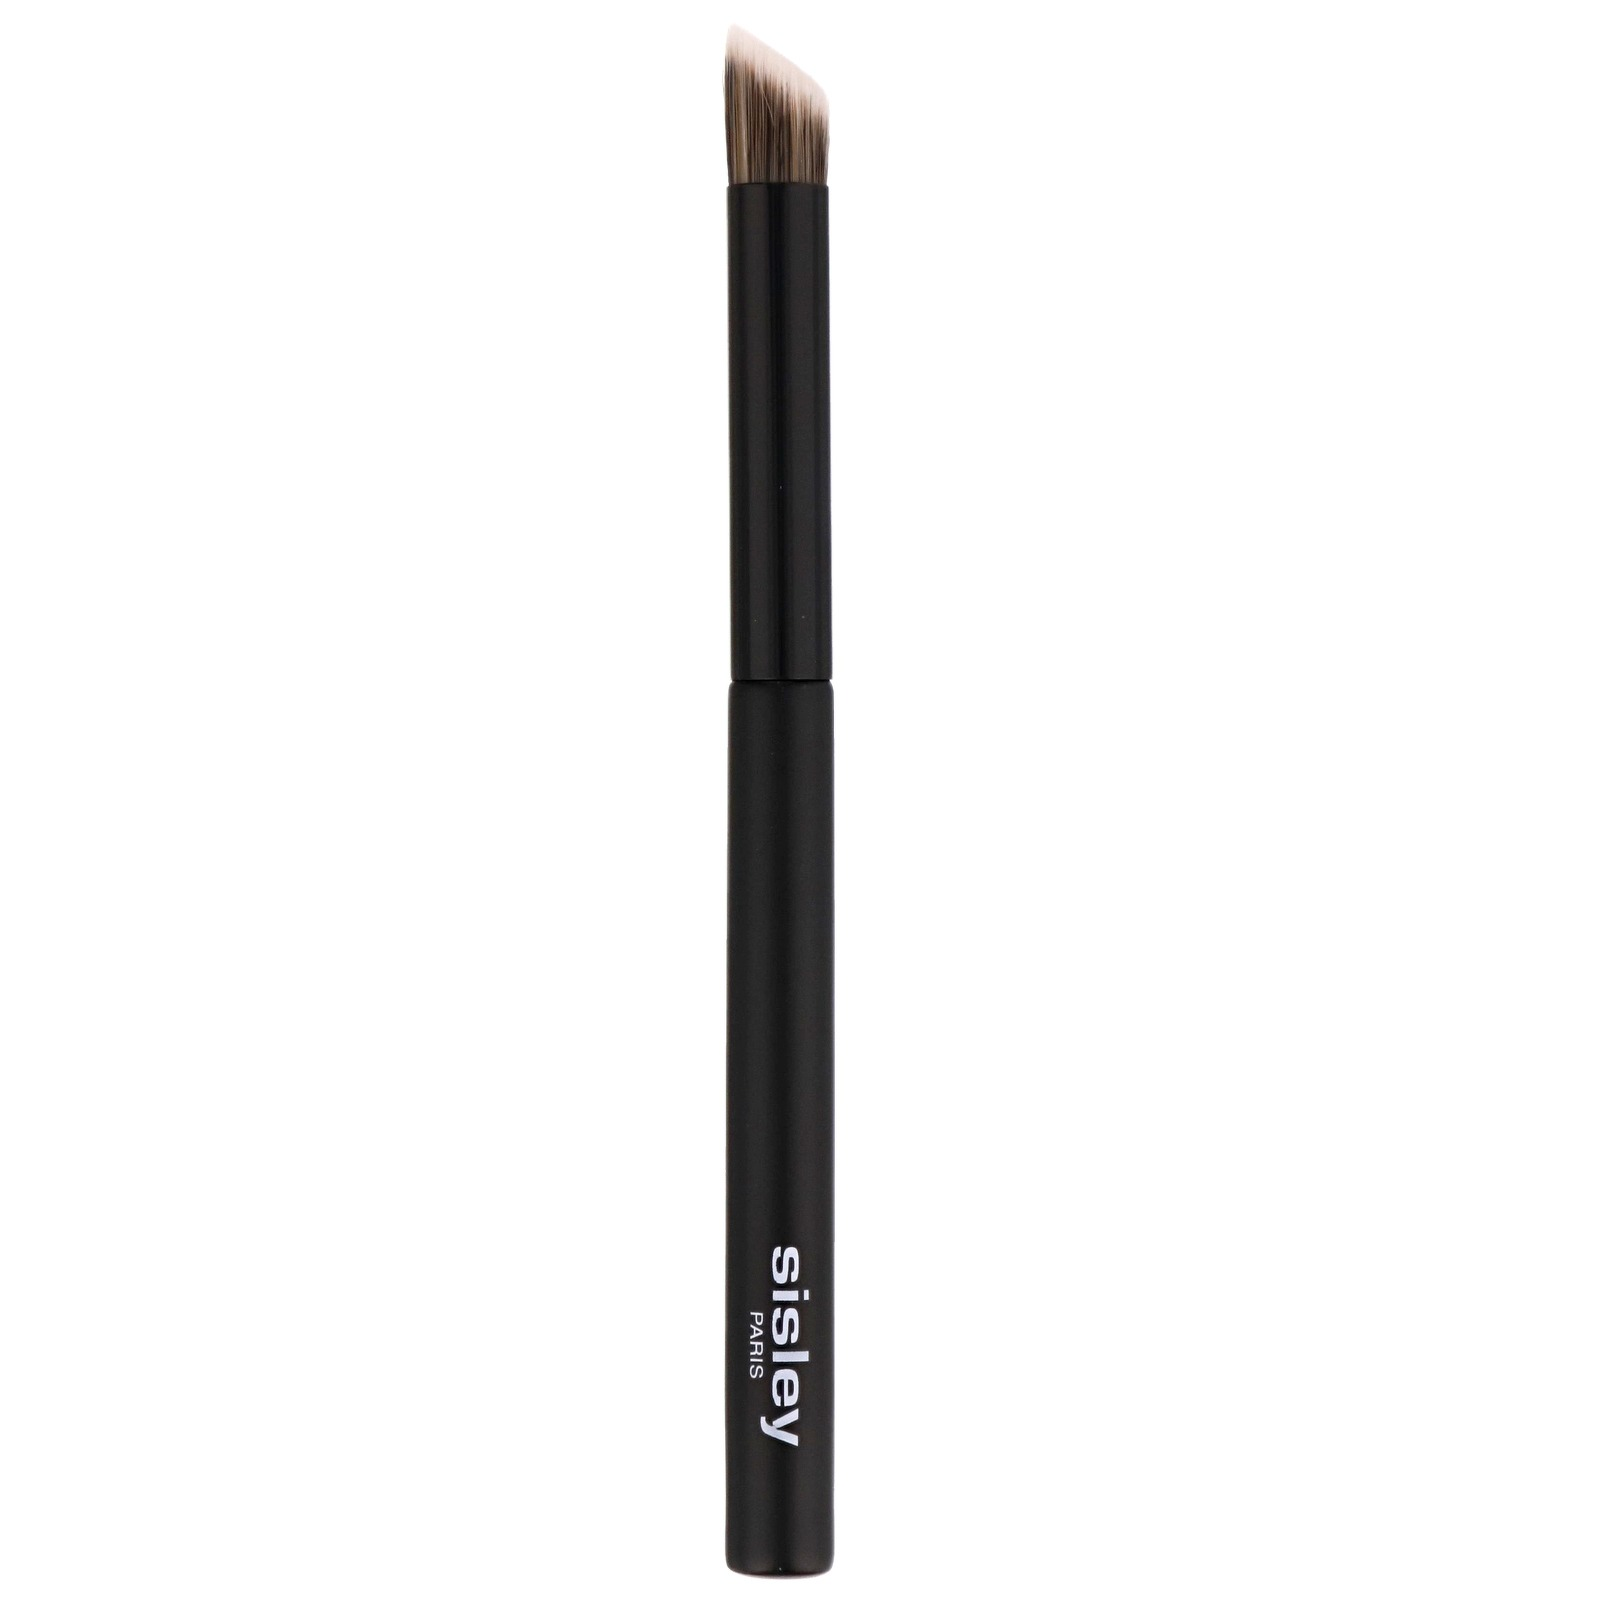 Sisley Brushes Eyeshadow Smudge Brush